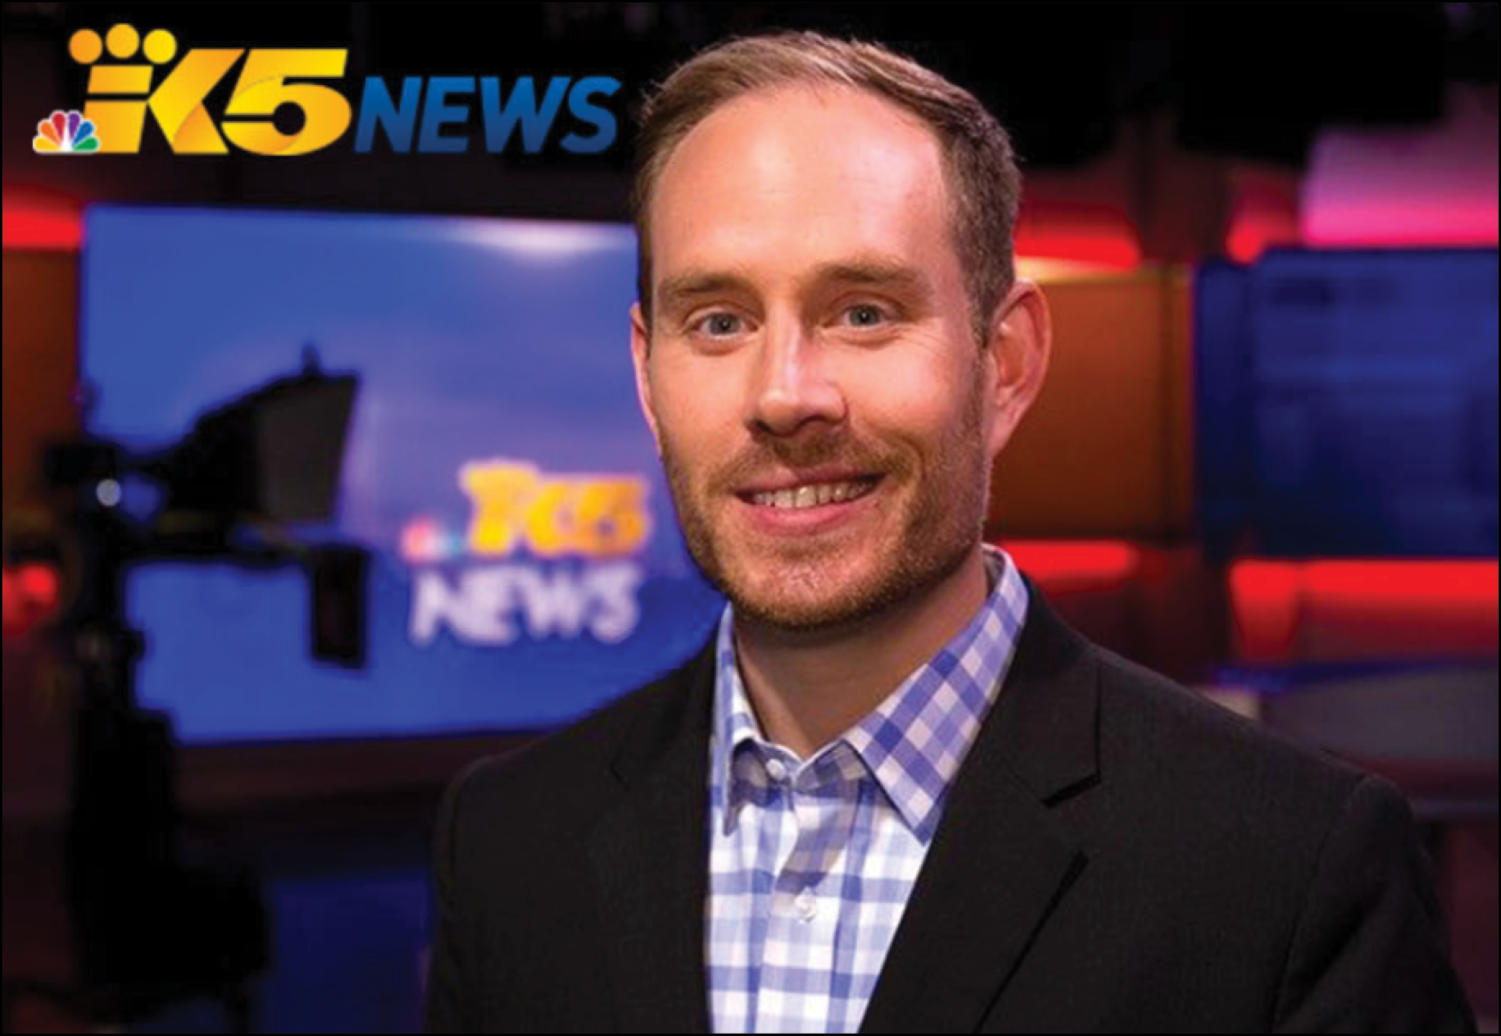 Ted Land, an Emmy Award-winning reporter and video journalist for KING 5 News in Seattle, will be the keynote speaker at the 2018 IJEA Fall Conference. The event will take place Friday, Sept. 14, in the Illini Union at the University of Illinois at Urbana-Champaign.